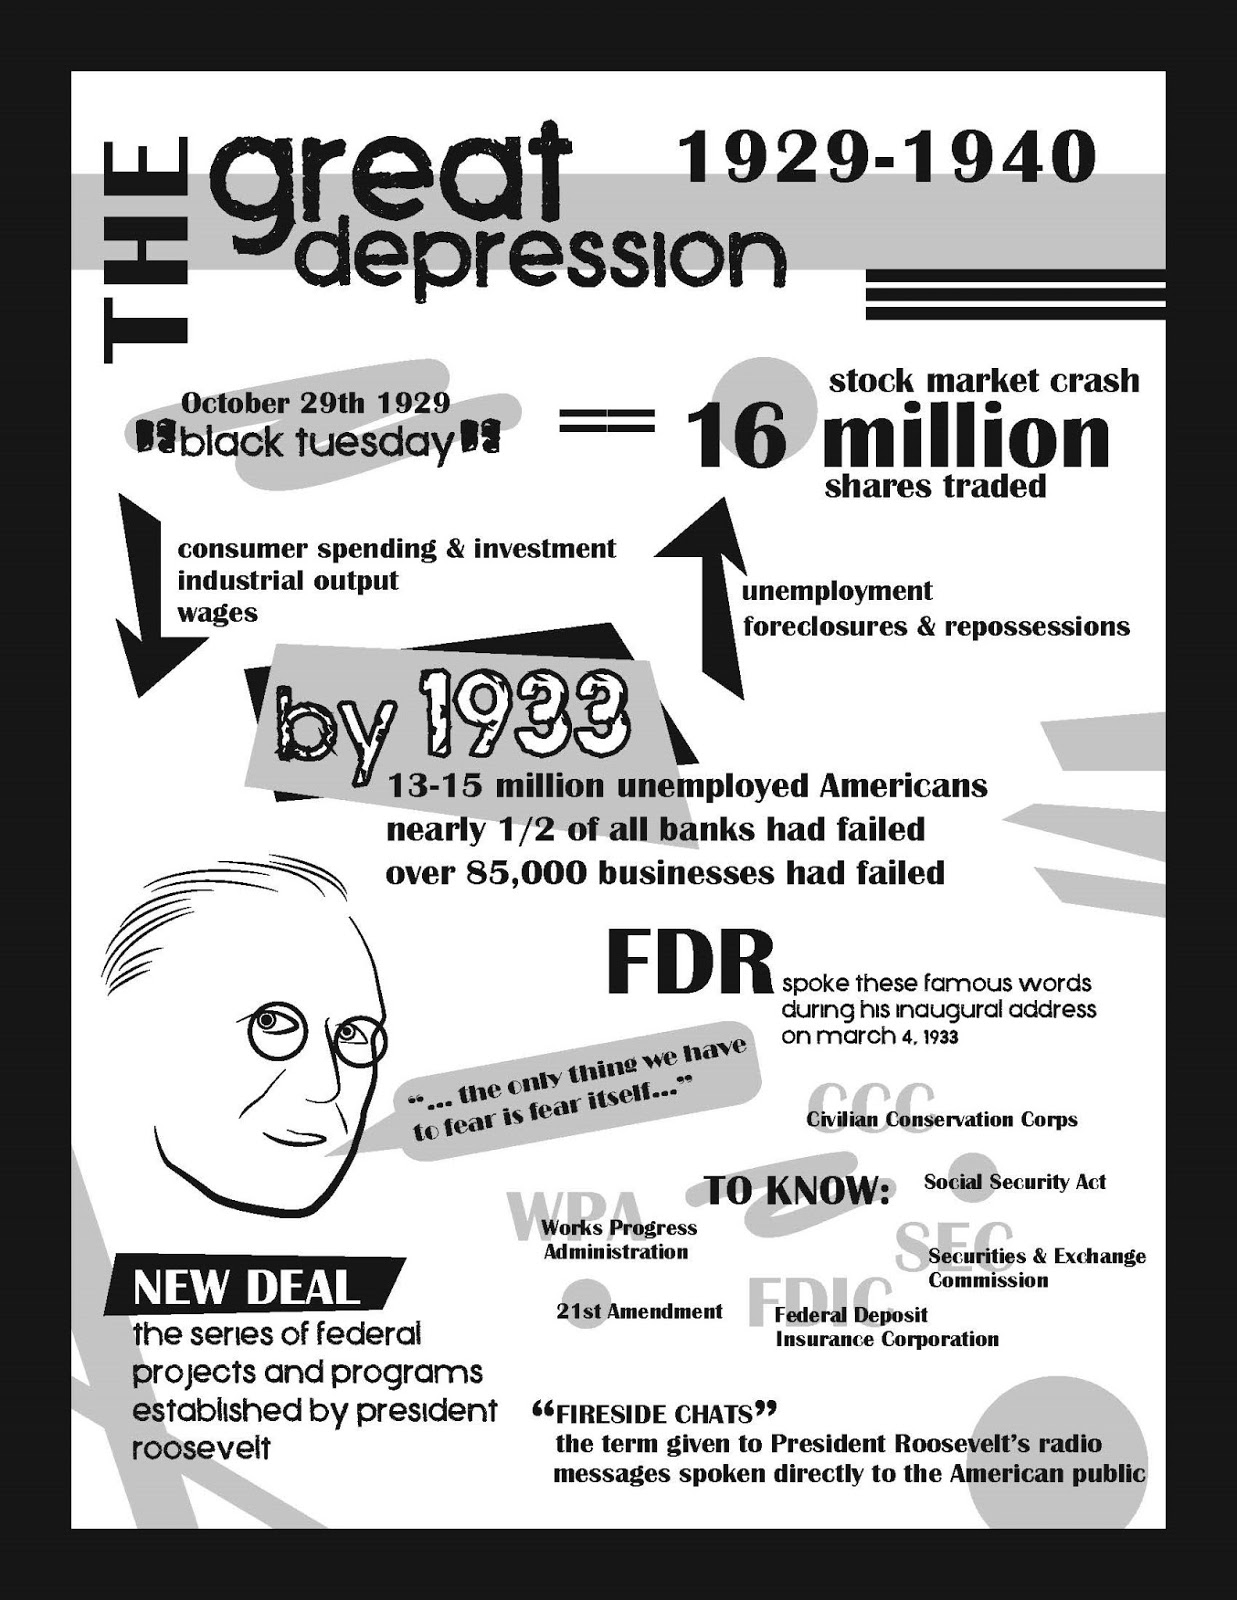 """fear itself depression life essay Successes and failures of roosevelt's new created by the depression of the address that """"the only thing we have to fear is fear itself."""